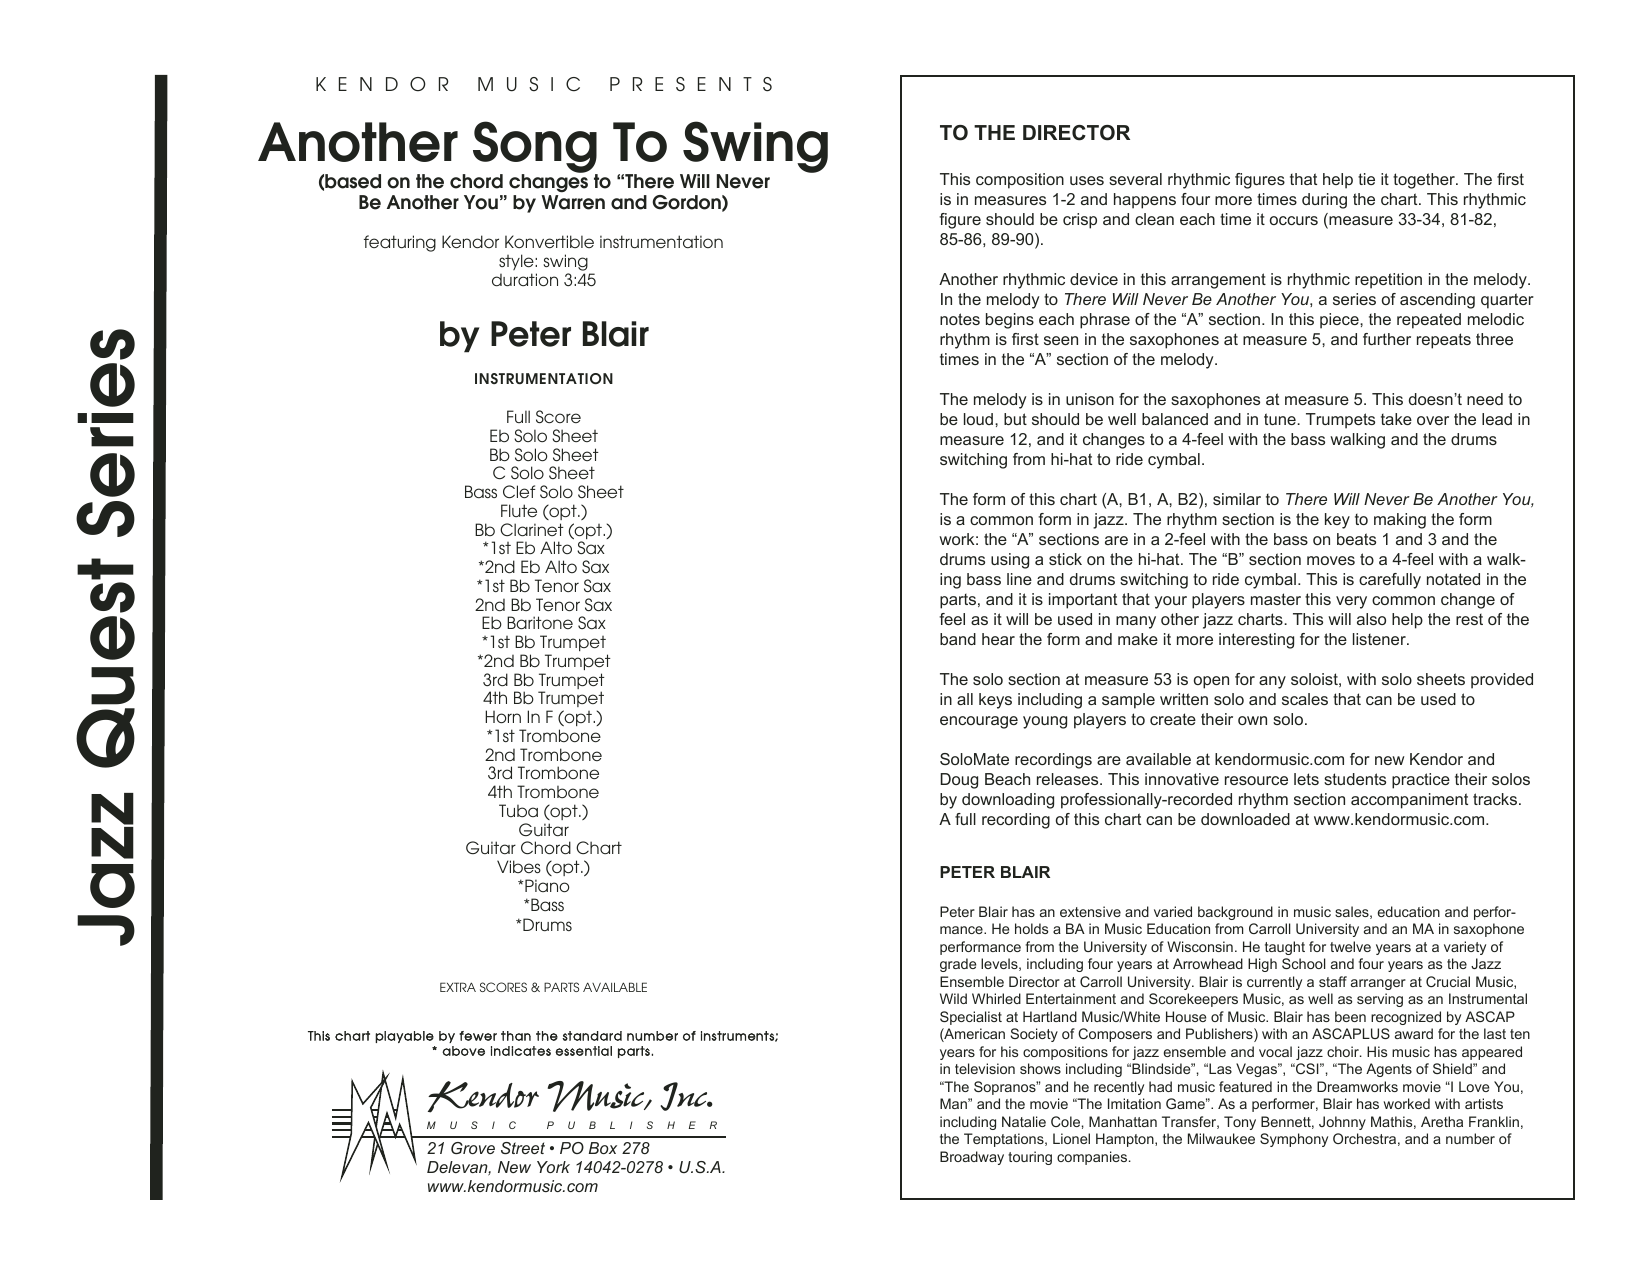 Another Song To Swing - Full Score Sheet Music